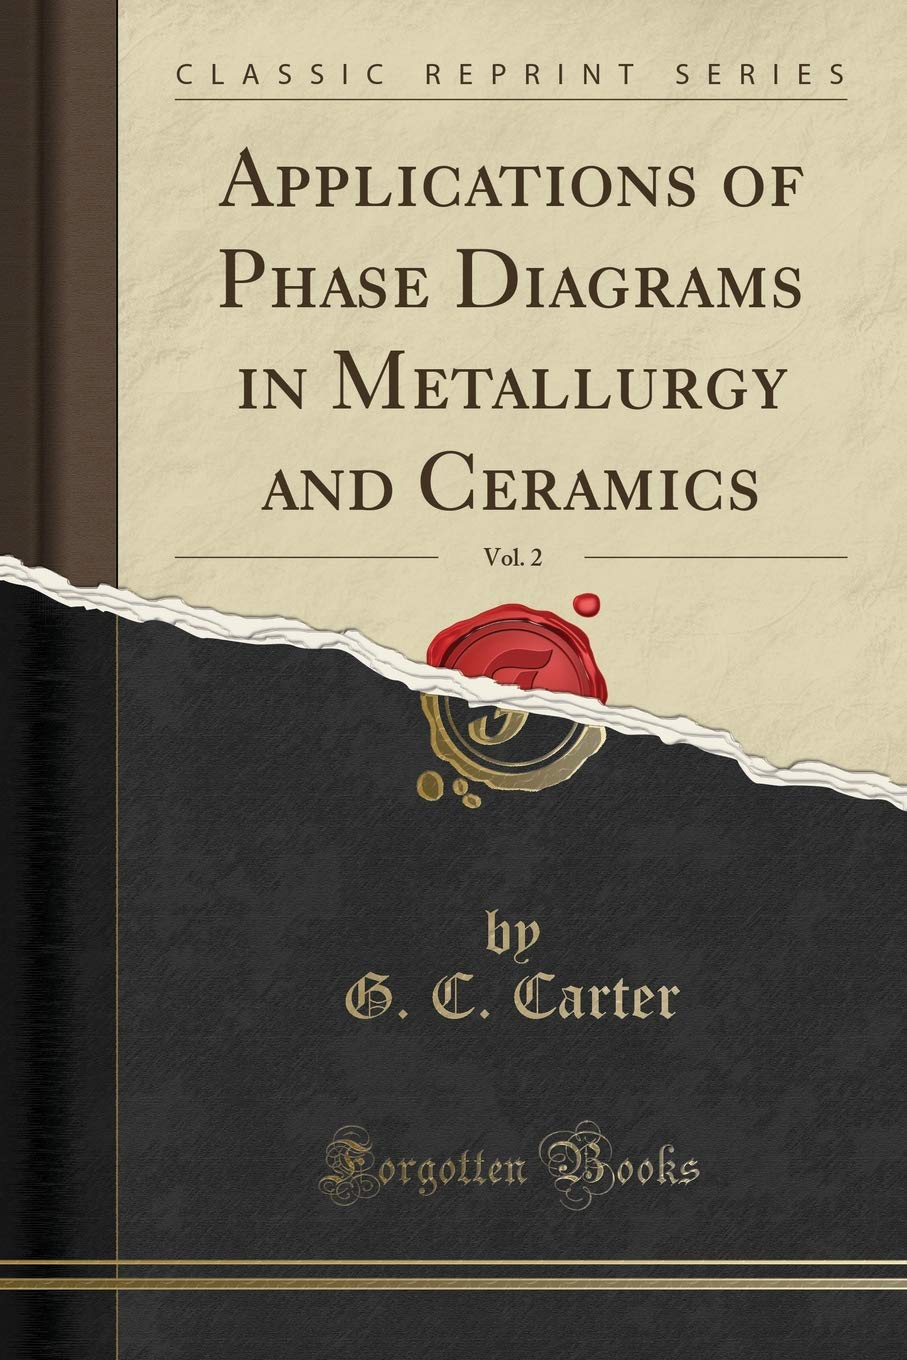 Applications of Phase Diagrams in Metallurgy and Ceramics, Vol. 6